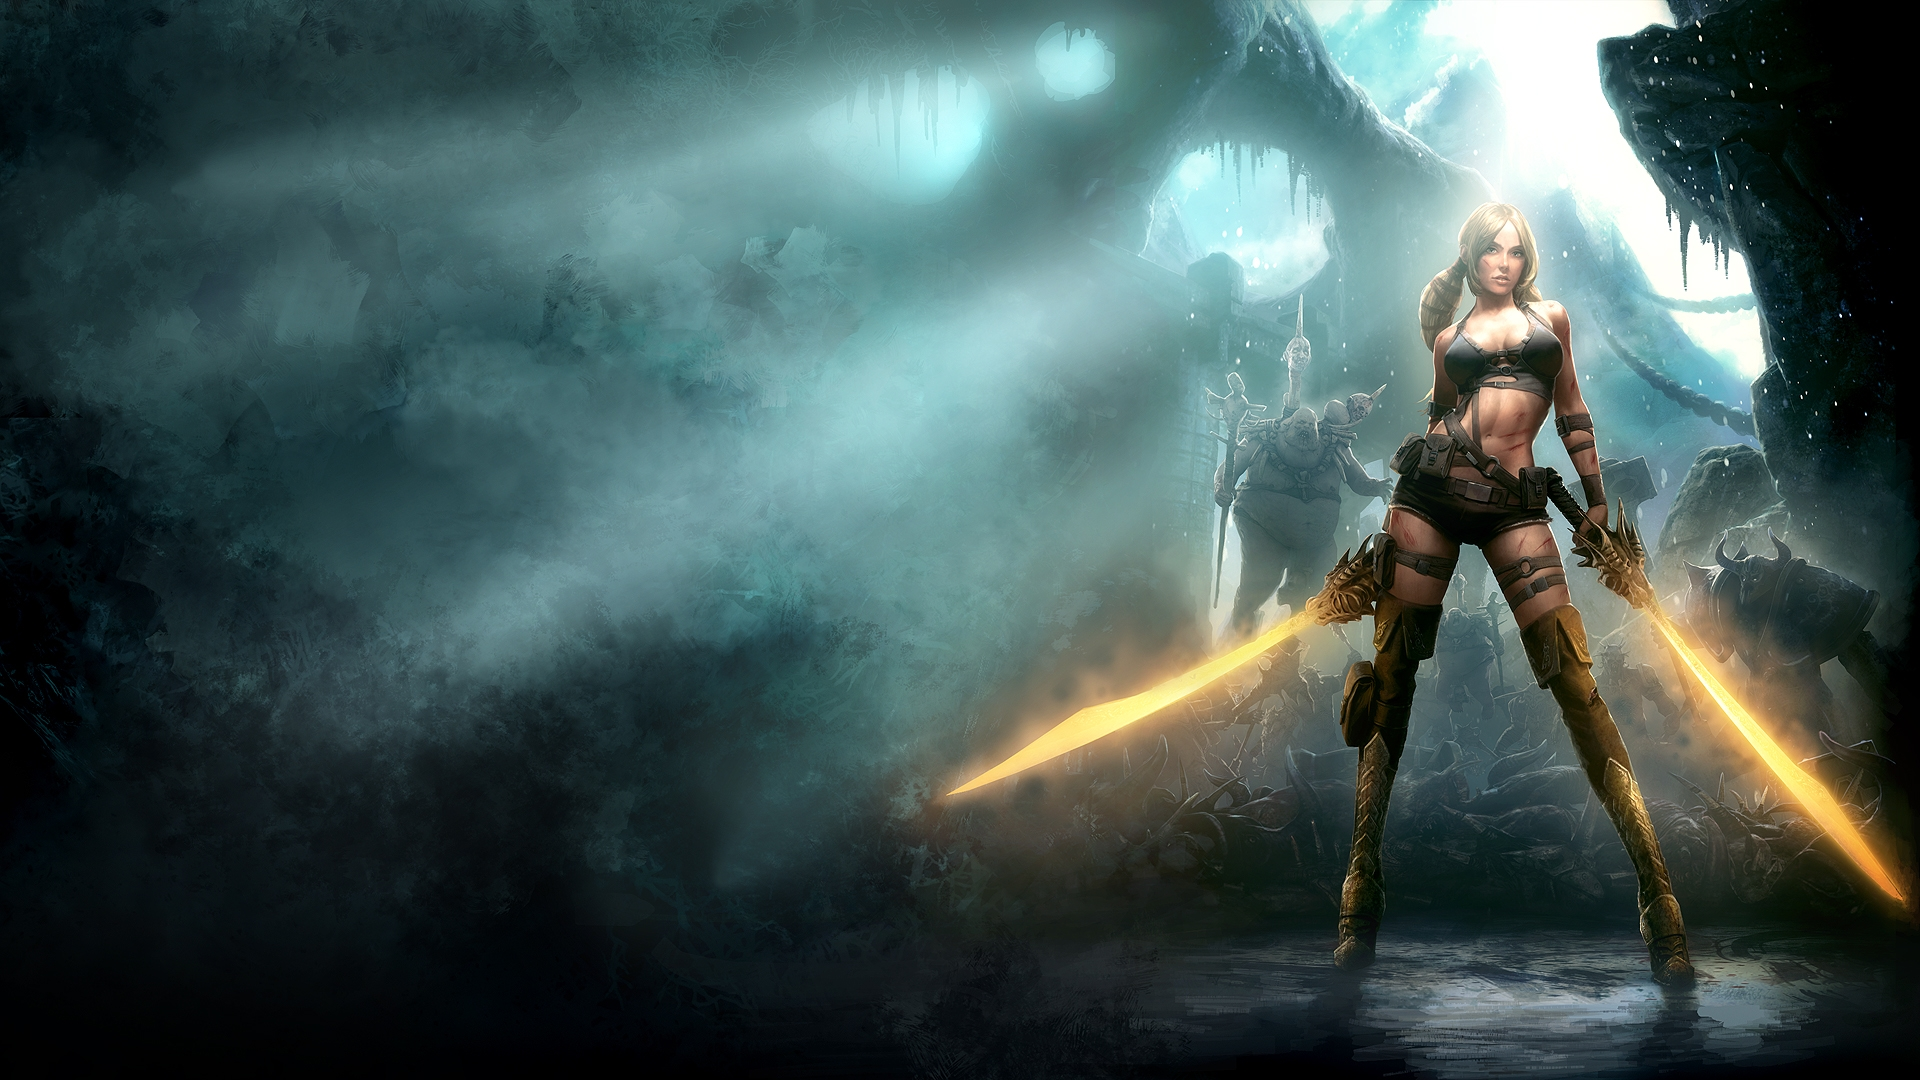 Stunning Hd Fantasy Gaming Desktop Wallpapers: Fantasy Wallpapers